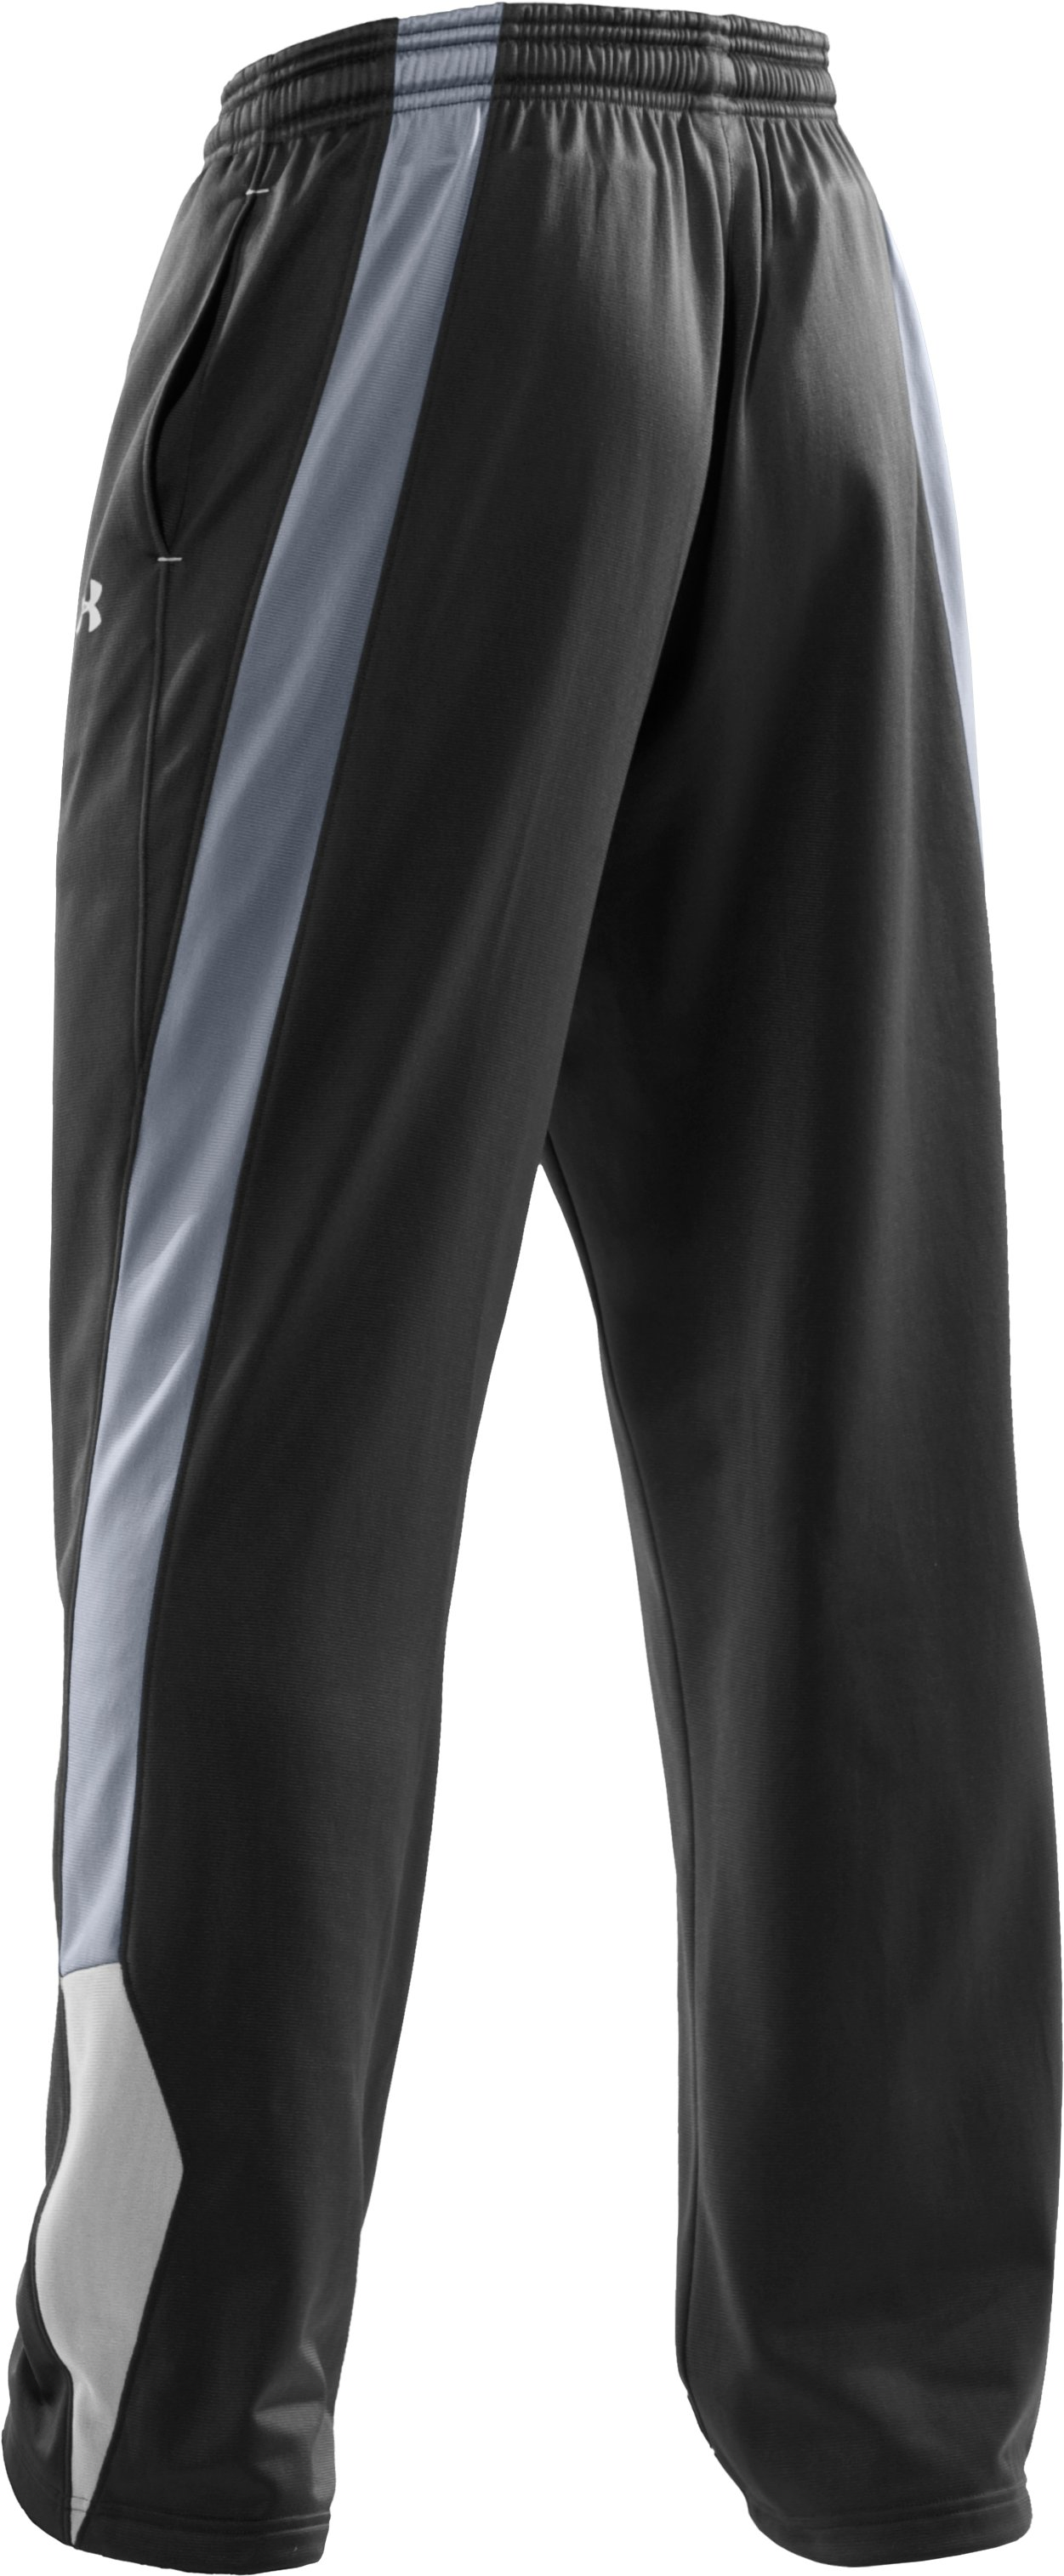 Men's Attack Knit Training Pants, Black , undefined